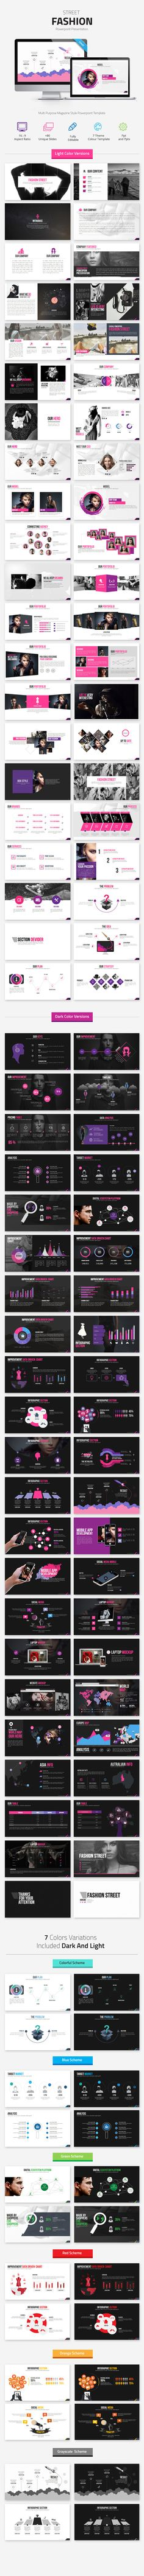 #Multipurpose #Fashion #PowerPoint #Keynote #Templates #Themes  fashion business pptx powerpoint, pptx team powerpoint templates, gantt chart ppt template free download, marketing strategies powerpoint templates pptx, download multipurpose keynote templates, multipurpose keynote theme